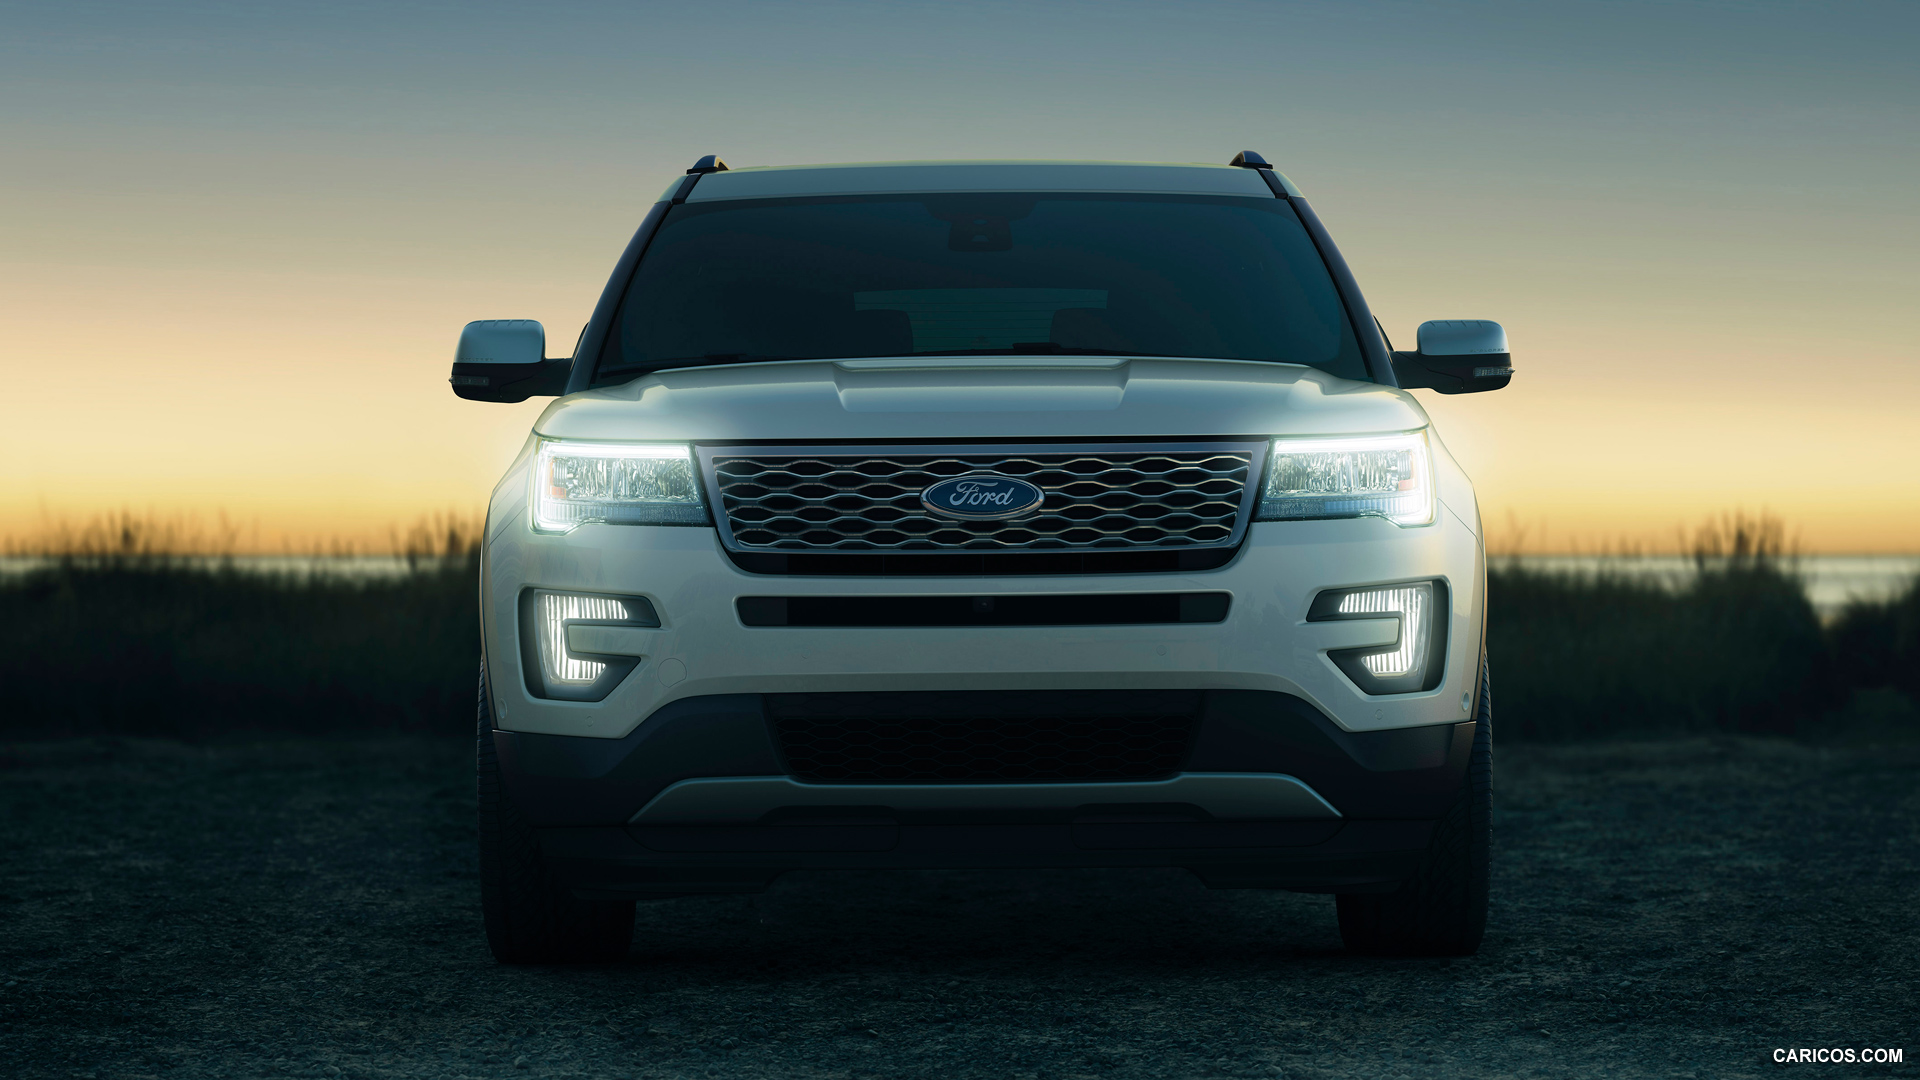 1920x1080 - Ford Explorer Wallpapers 6